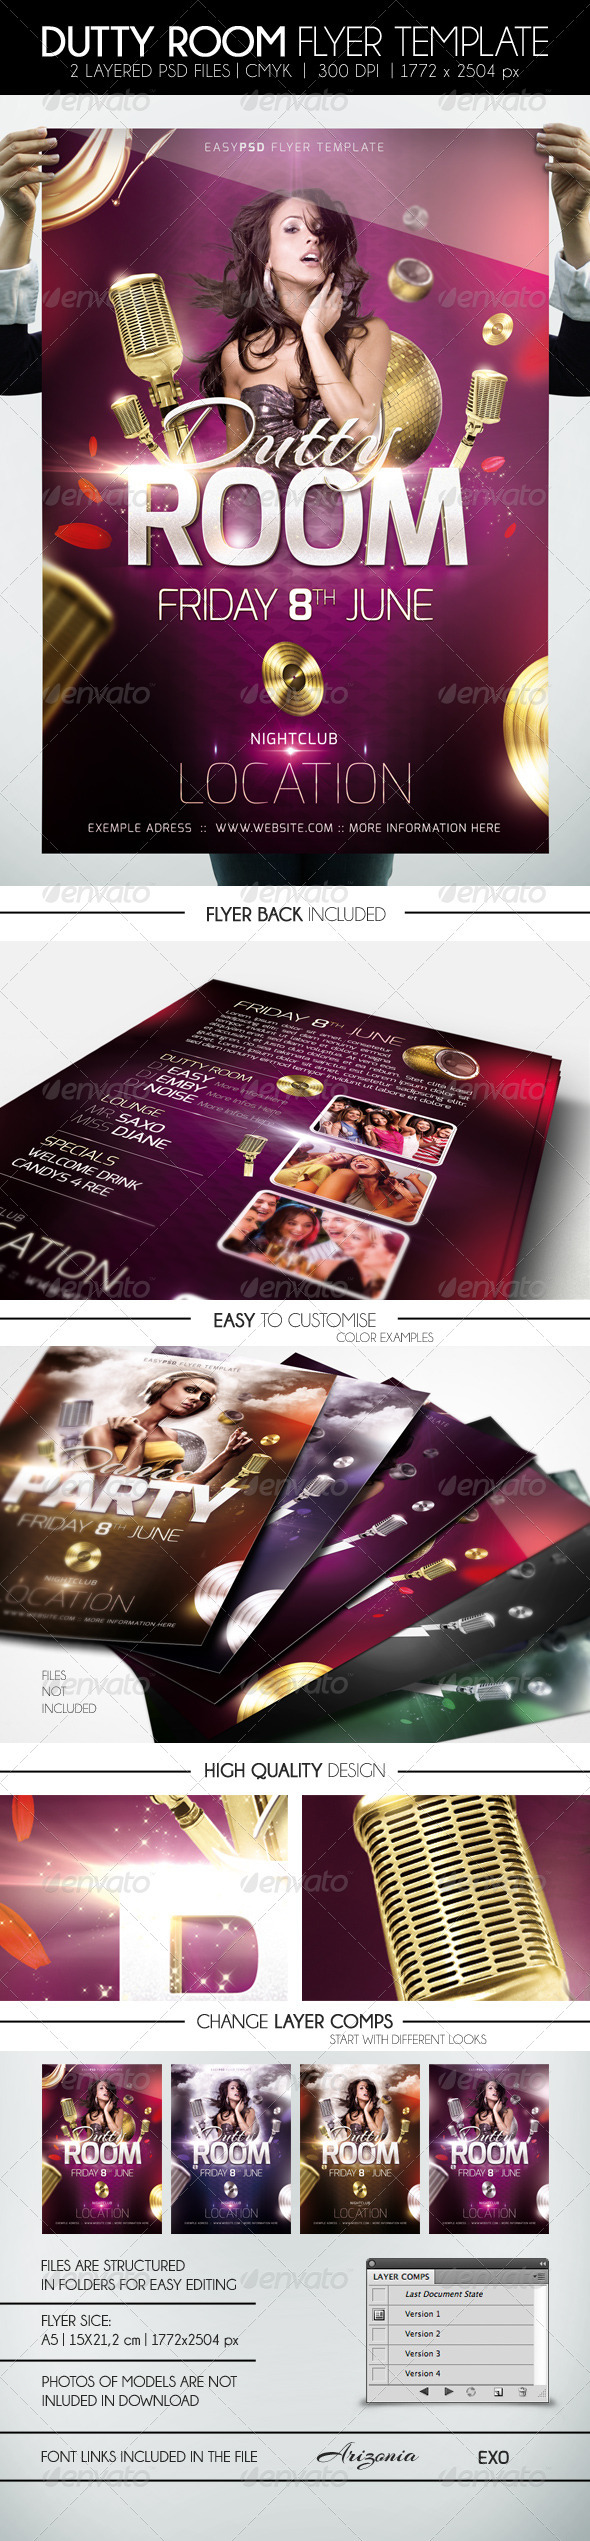 Dutty Room Flyer Template - Clubs & Parties Events